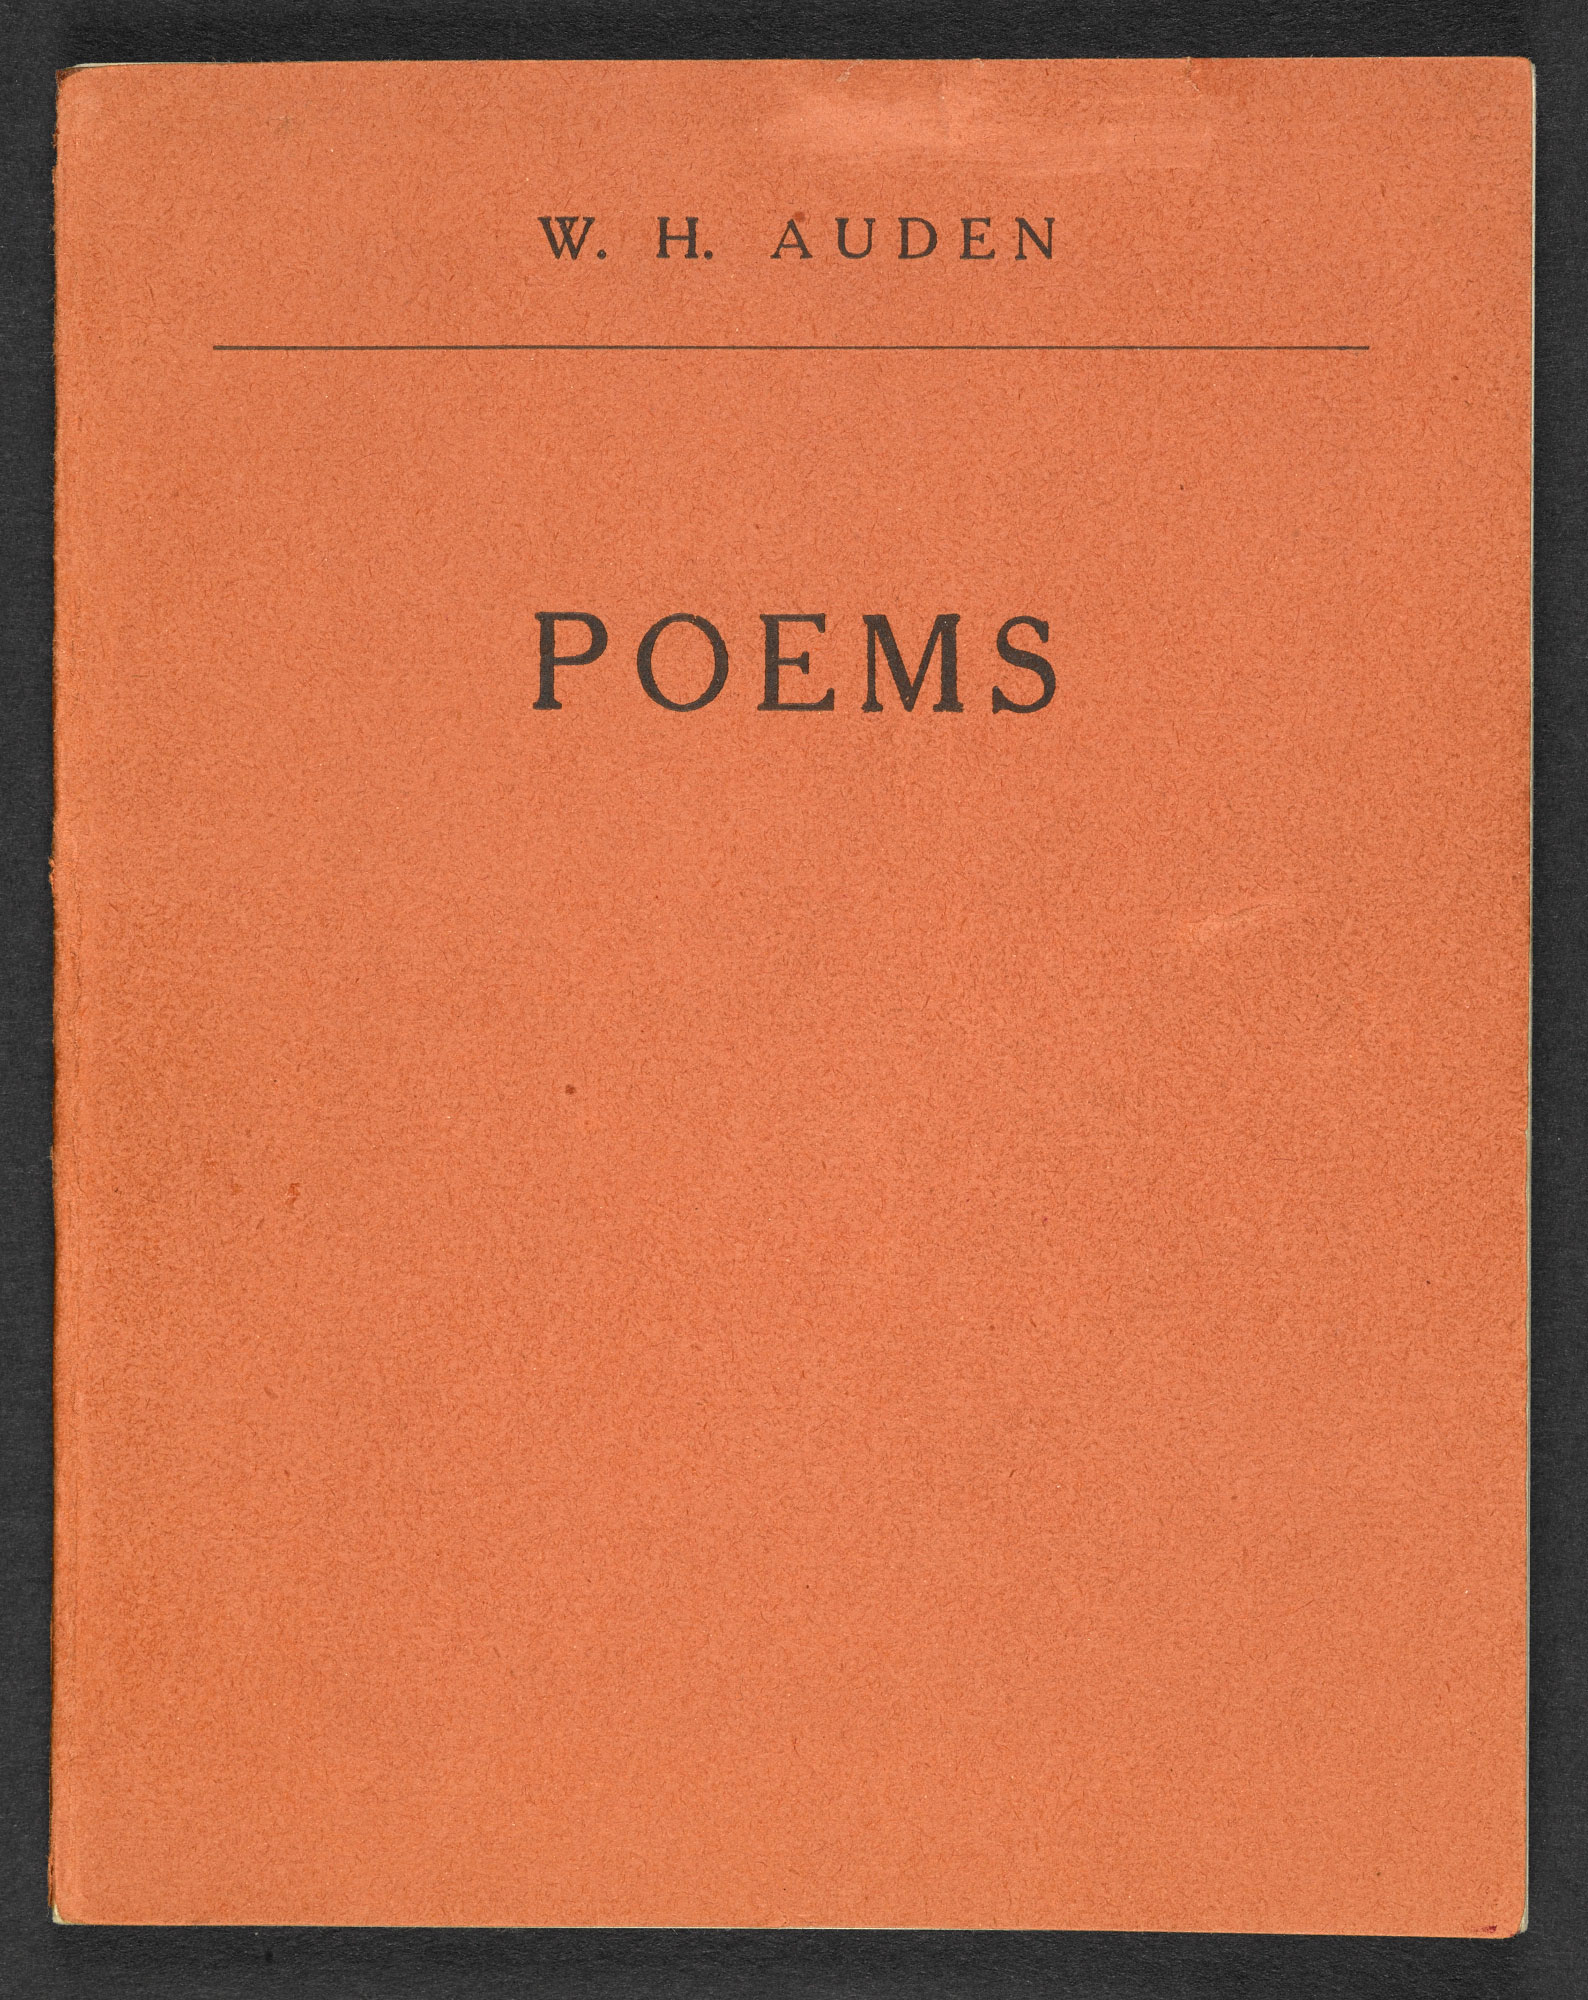 Poems. Auden's first published collection of poems, published by Stephen Spender